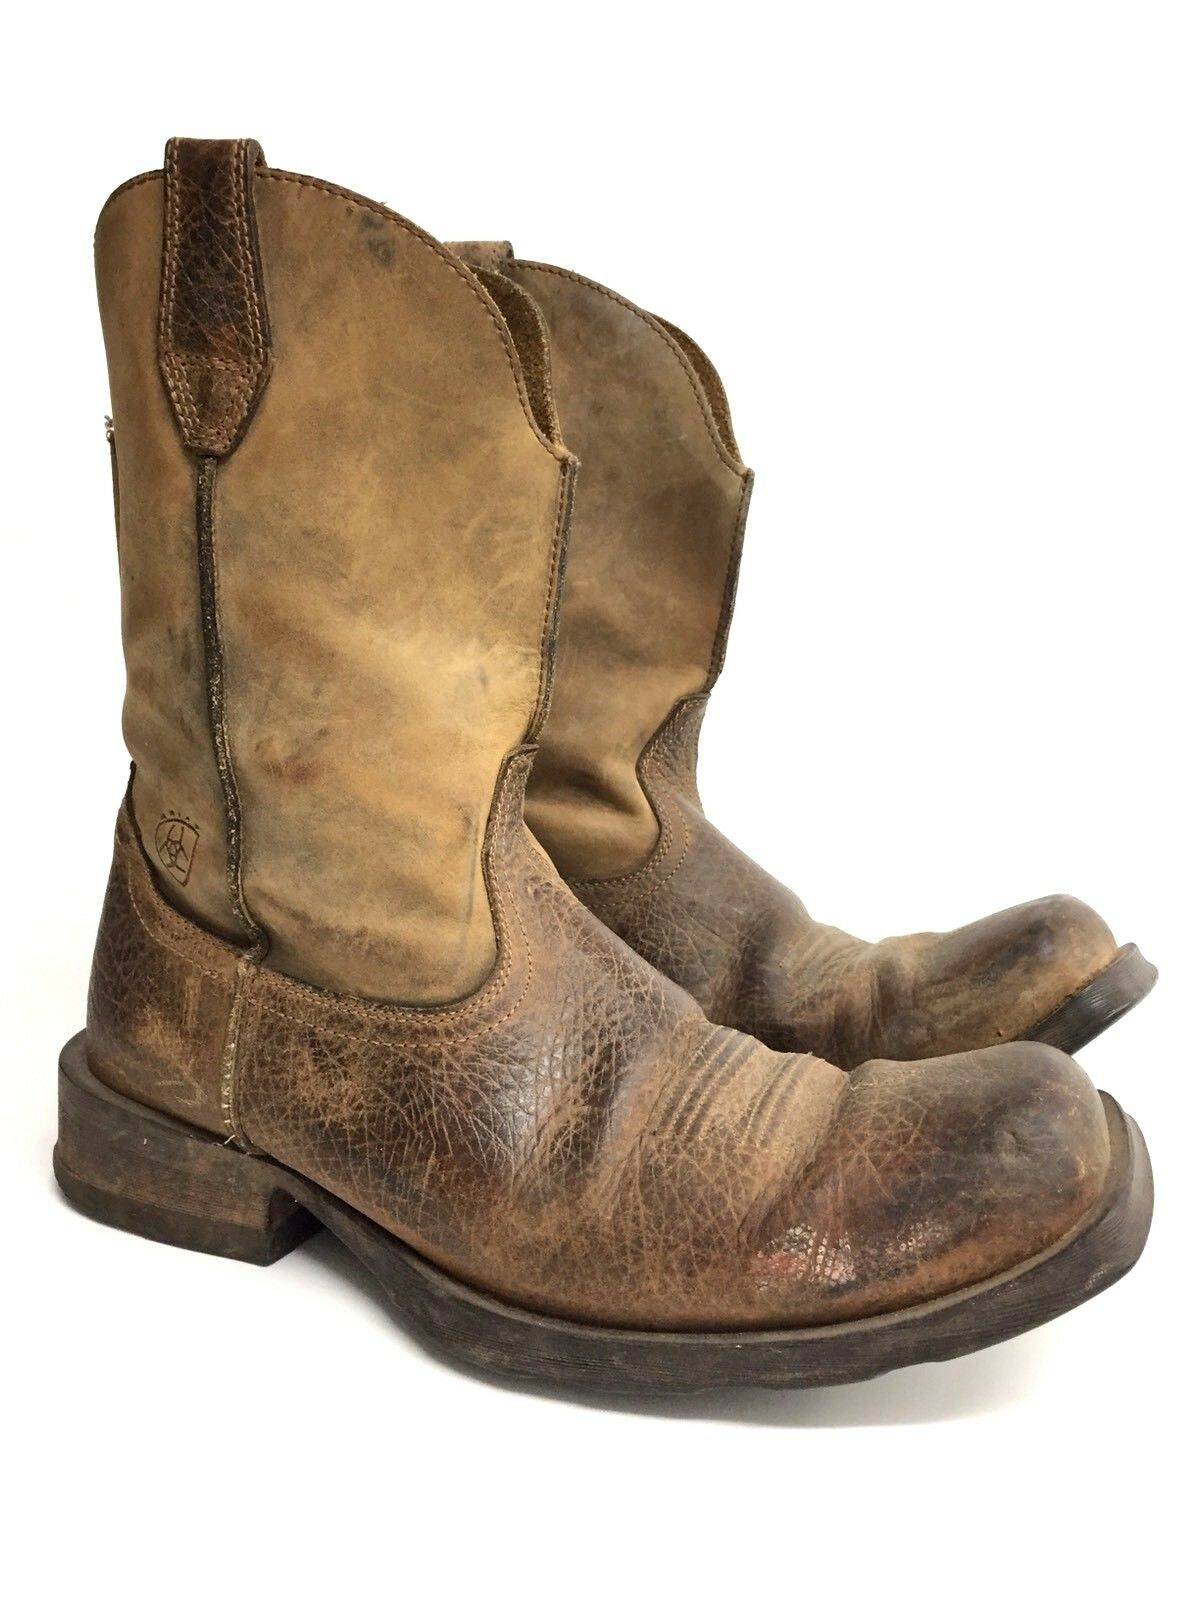 Ariat Men's Size 11 D Brown Distressed Leather Cowboy Western Boot Decor Display